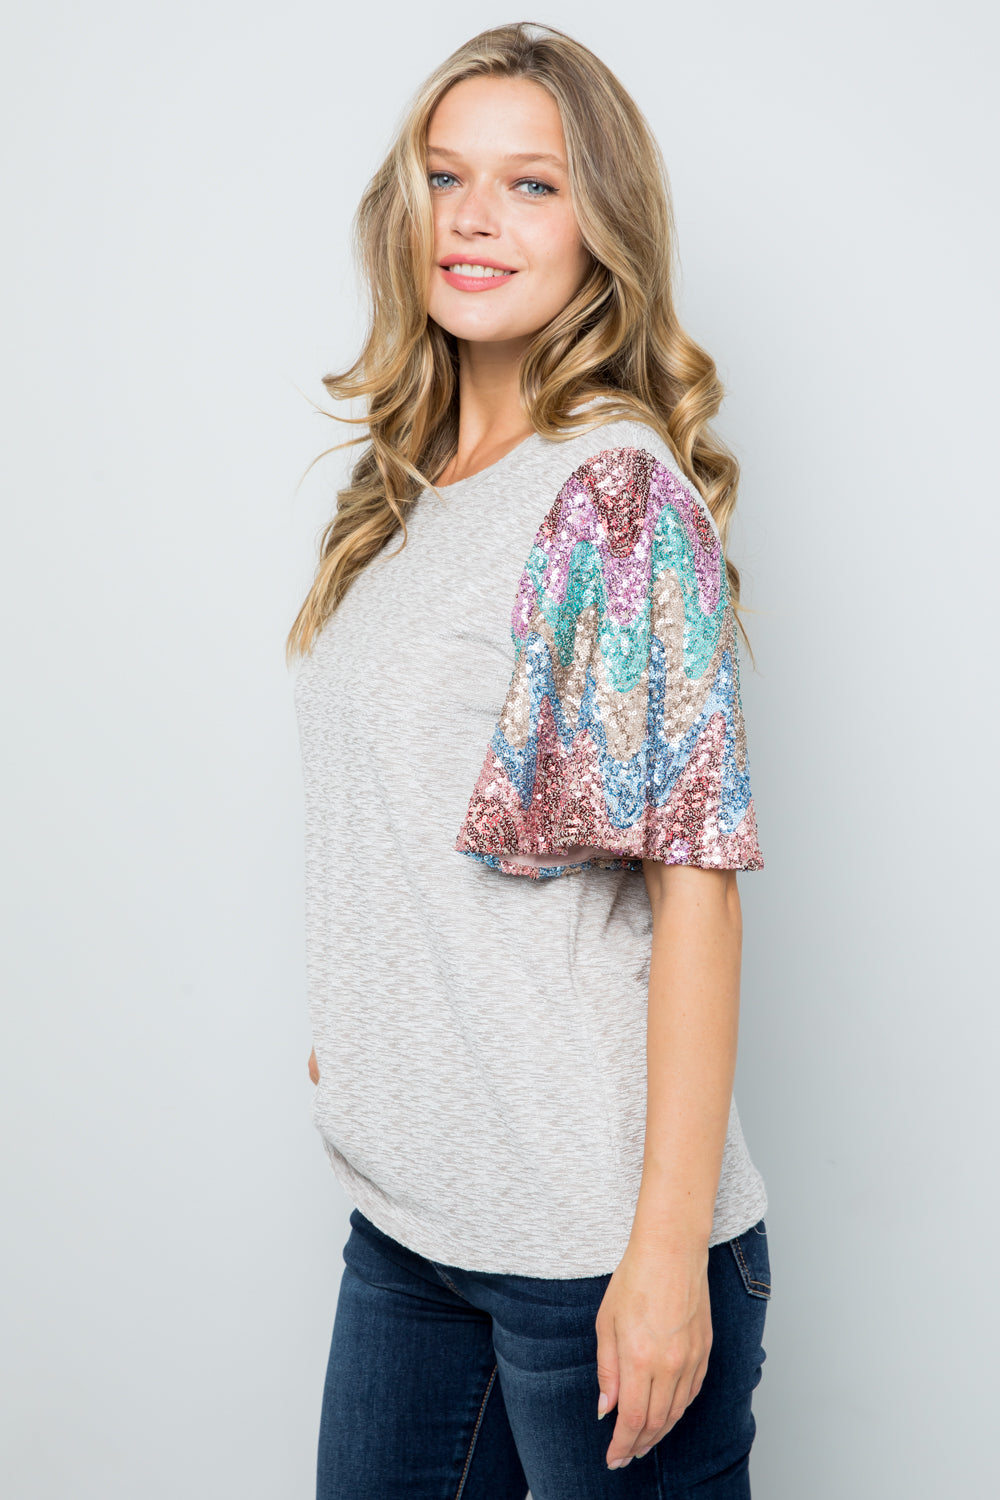 T2858 Sequins Sleeve Knit Top - TAUPE